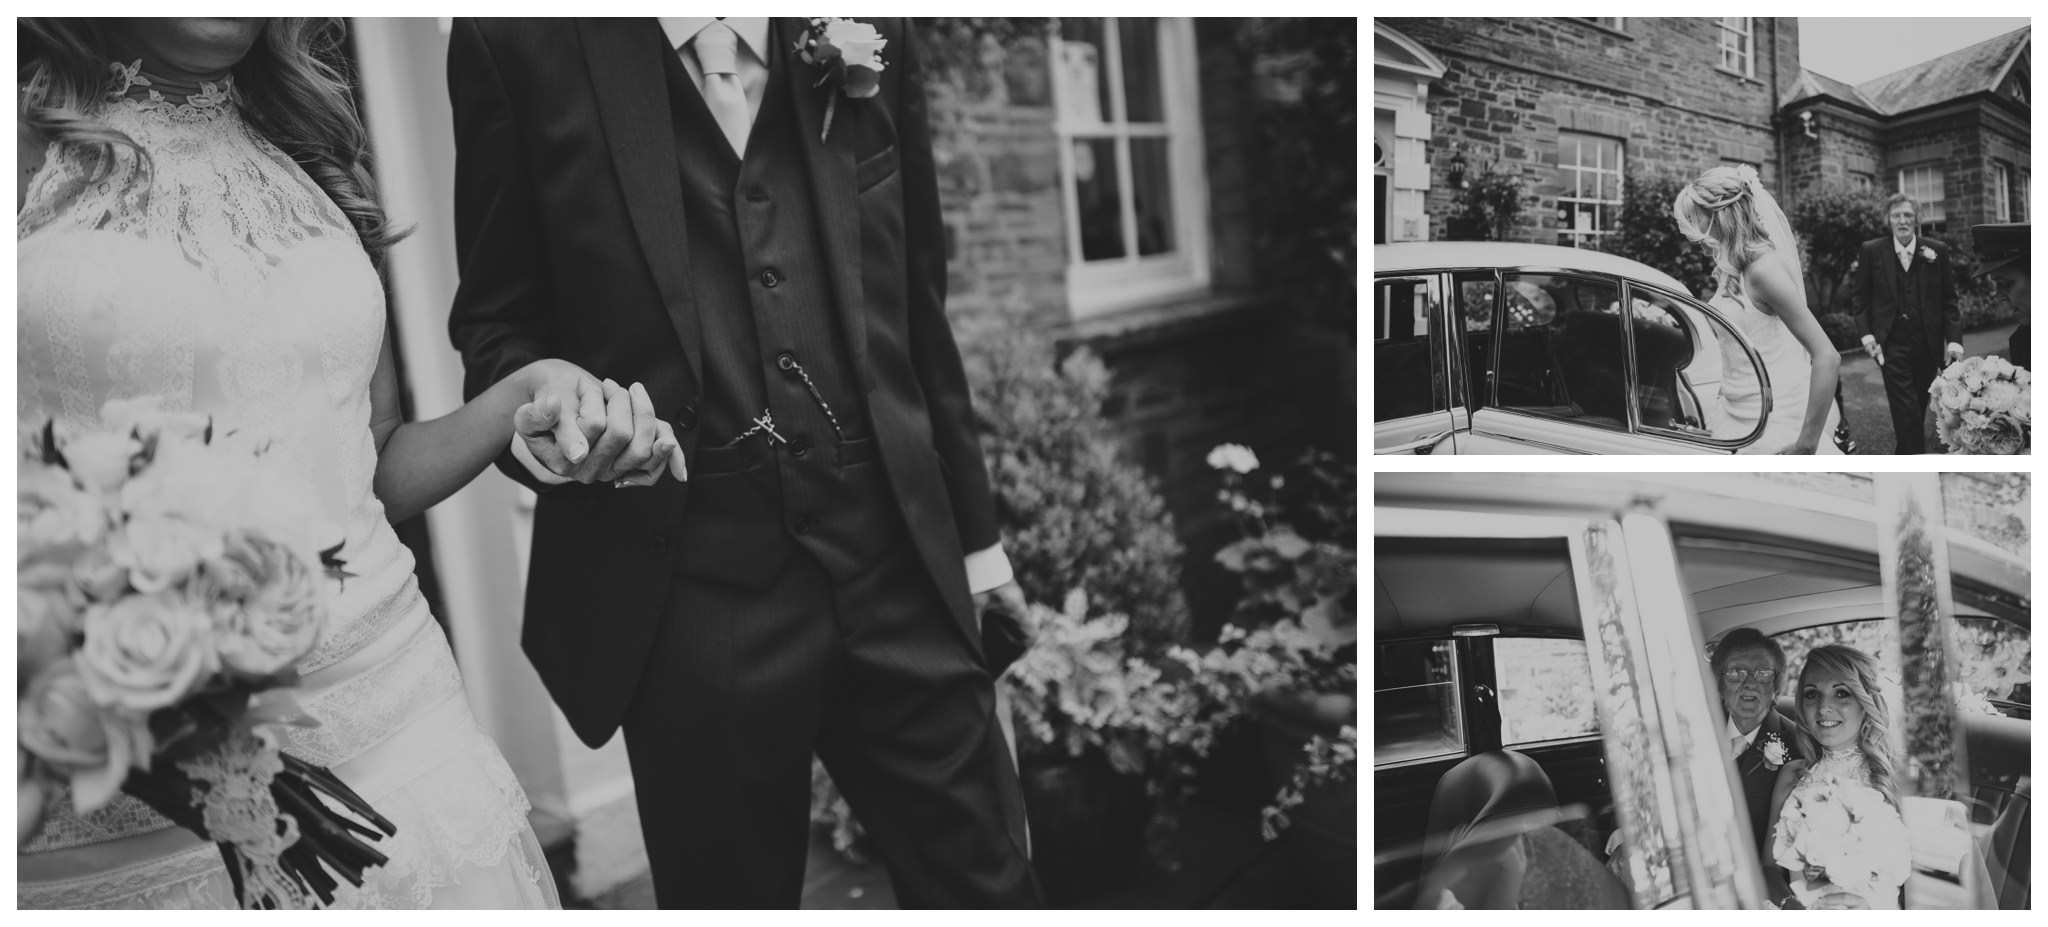 Richard Savage Photography - Wedding - Peterstone Court Brecon - 2016-05-11_0020